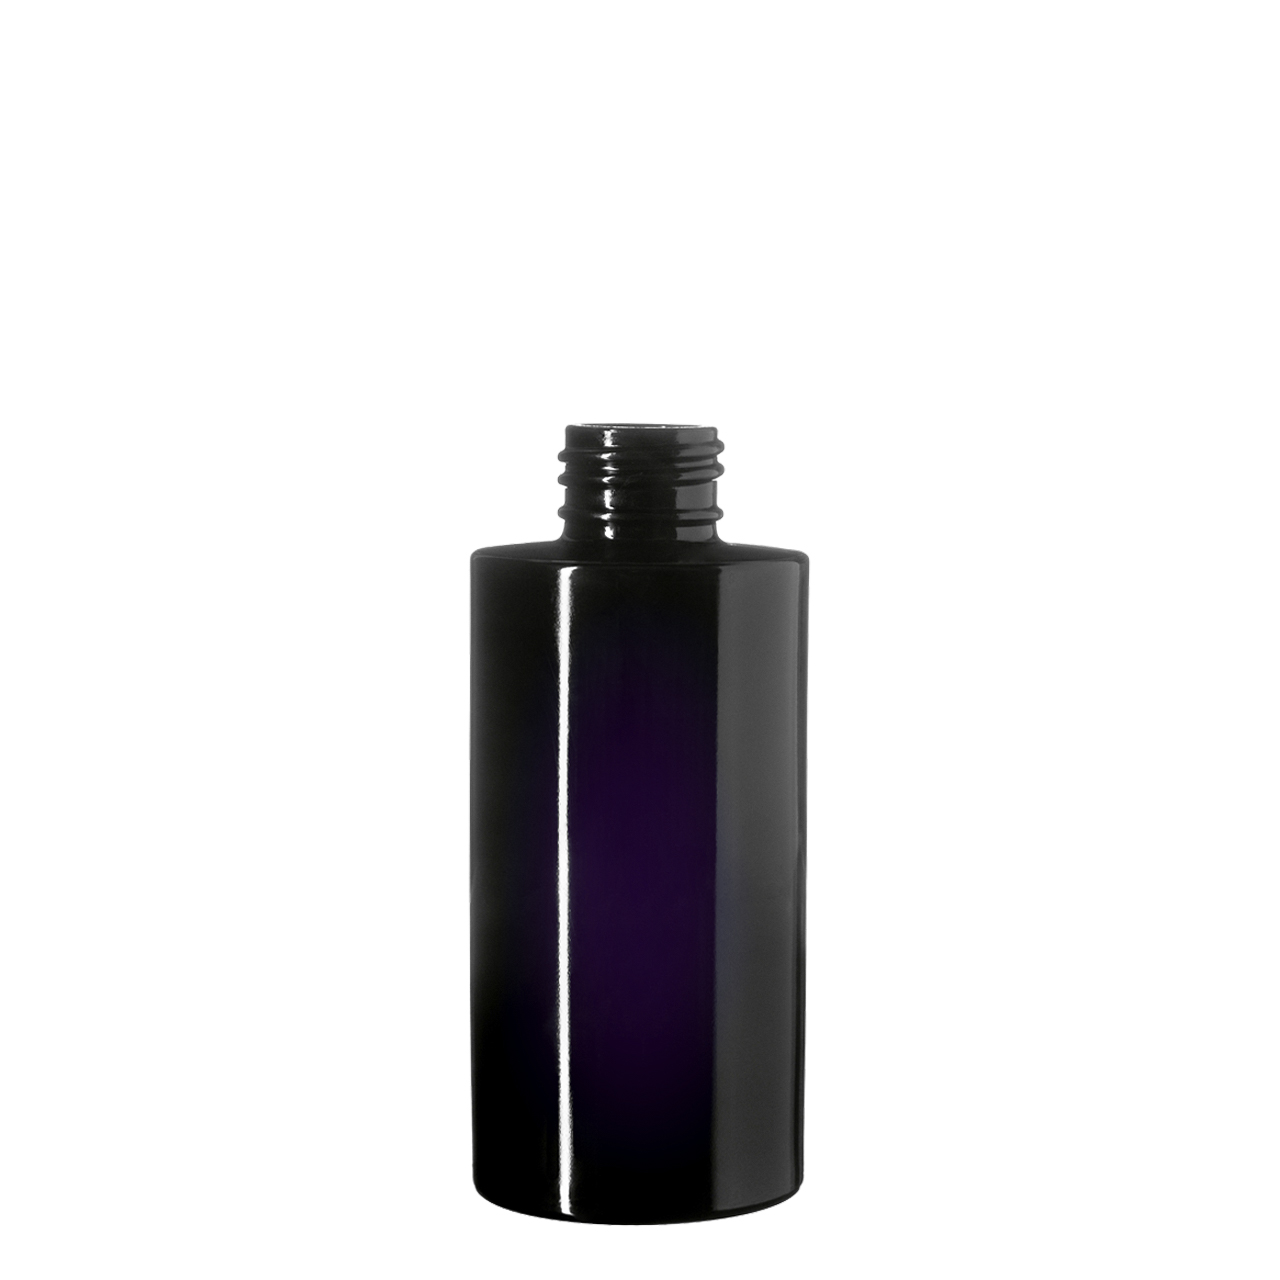 Cosmetic bottle Virgo 100 ml, Miron, 24/410 thread